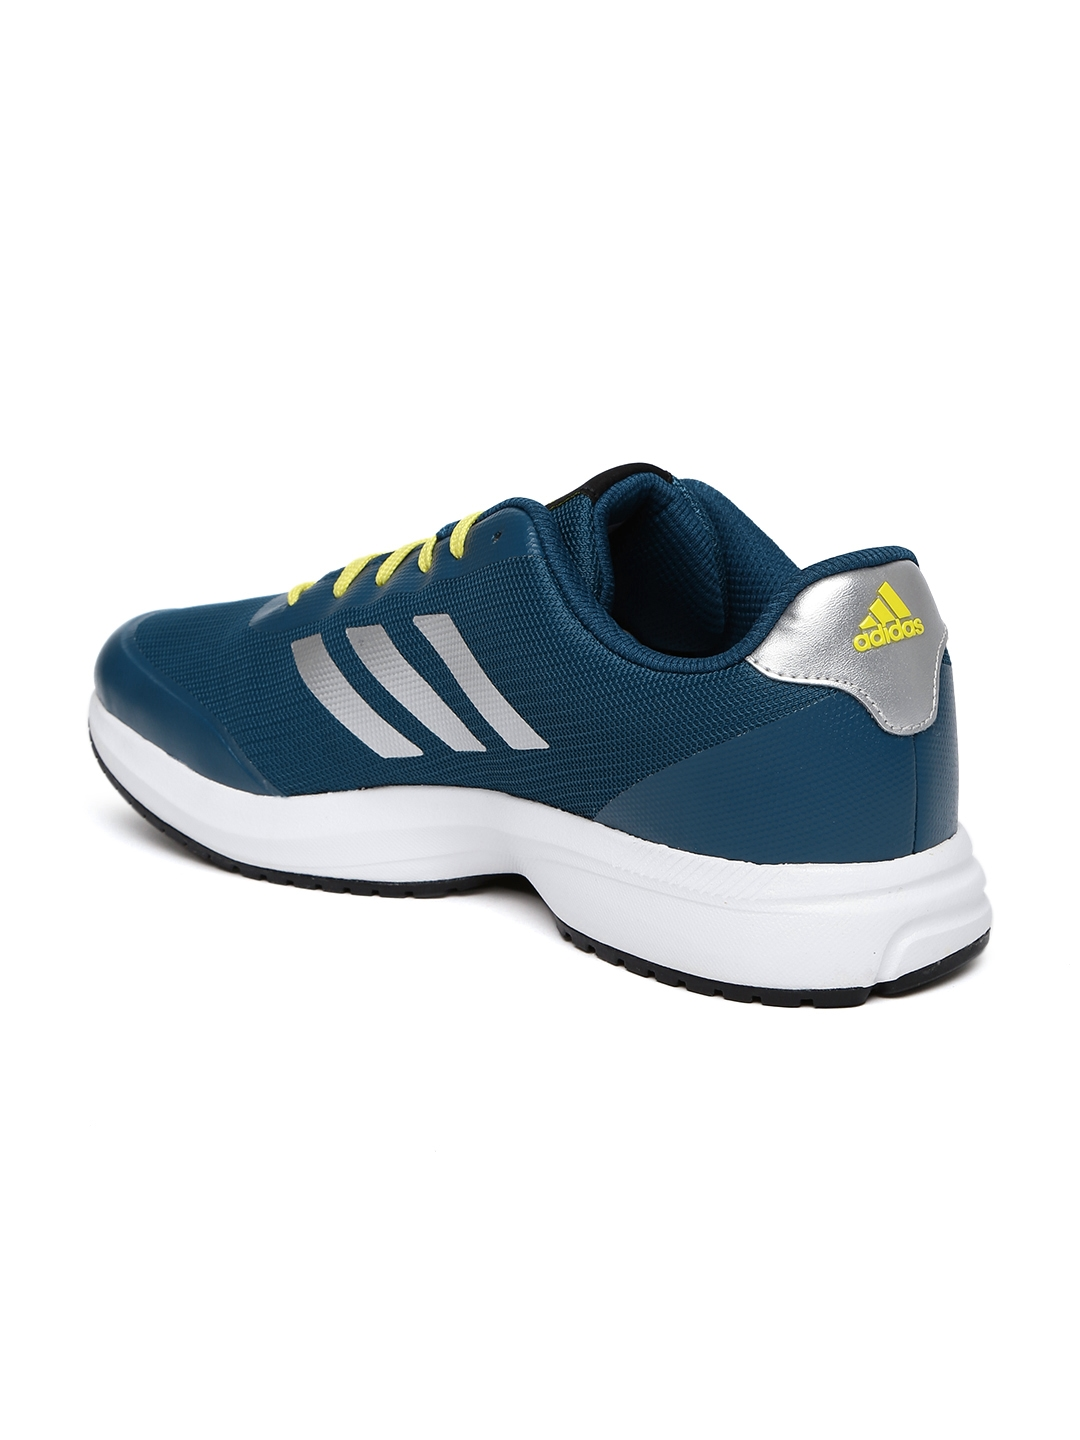 designer fashion ea0cd 5a965 ADIDAS Men Blue EZAR 4.0 M Running Shoes